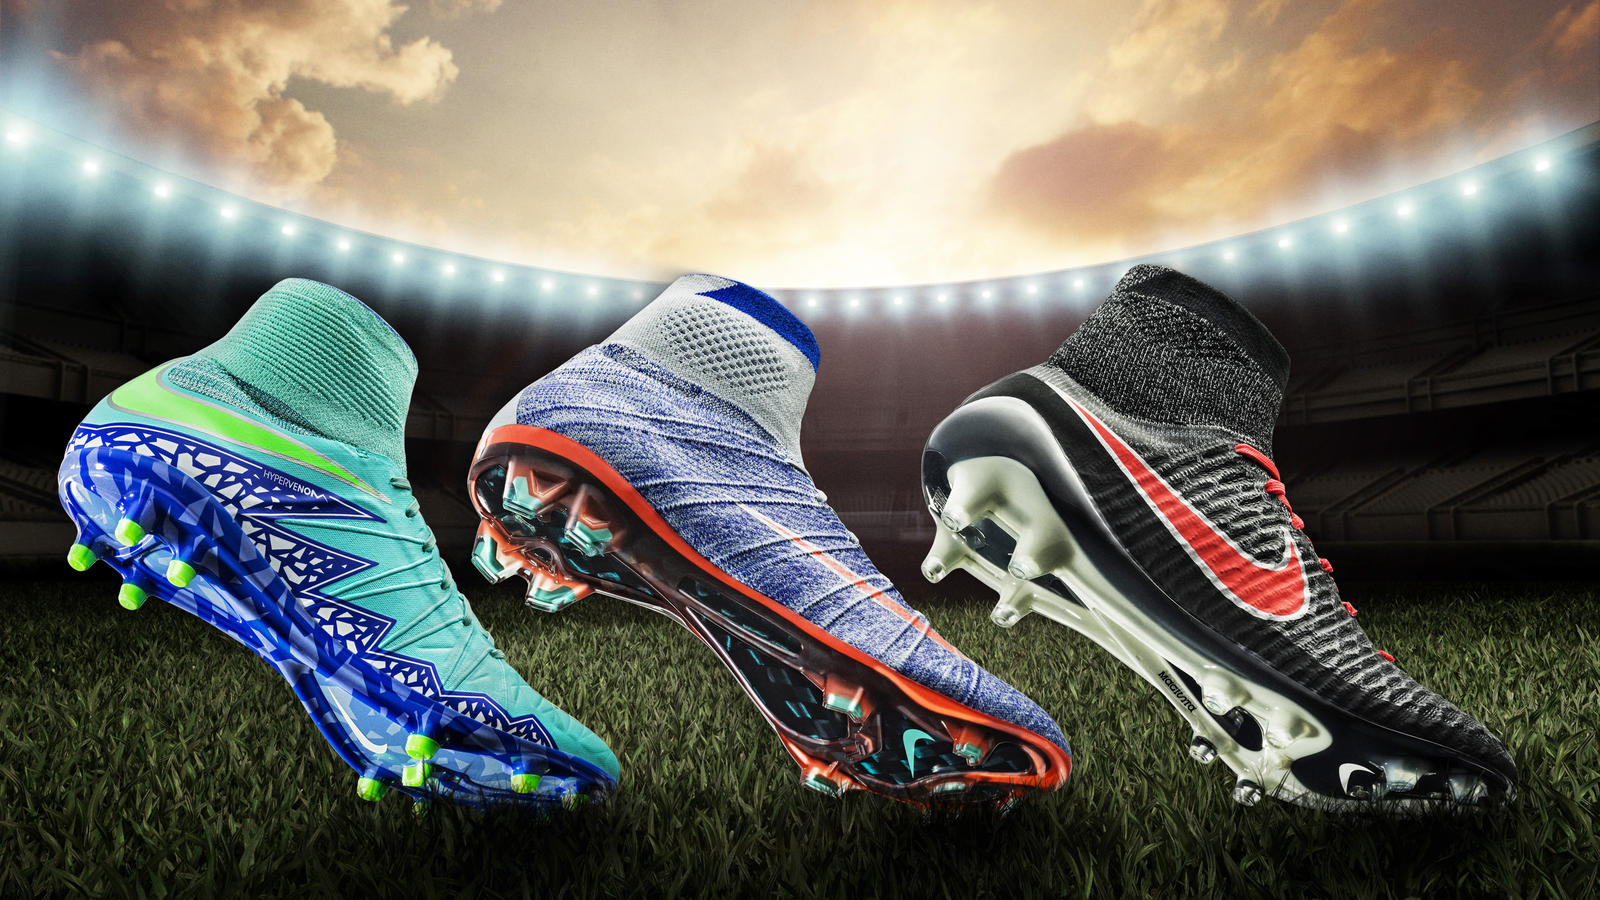 new nike soccer cleats coming out off